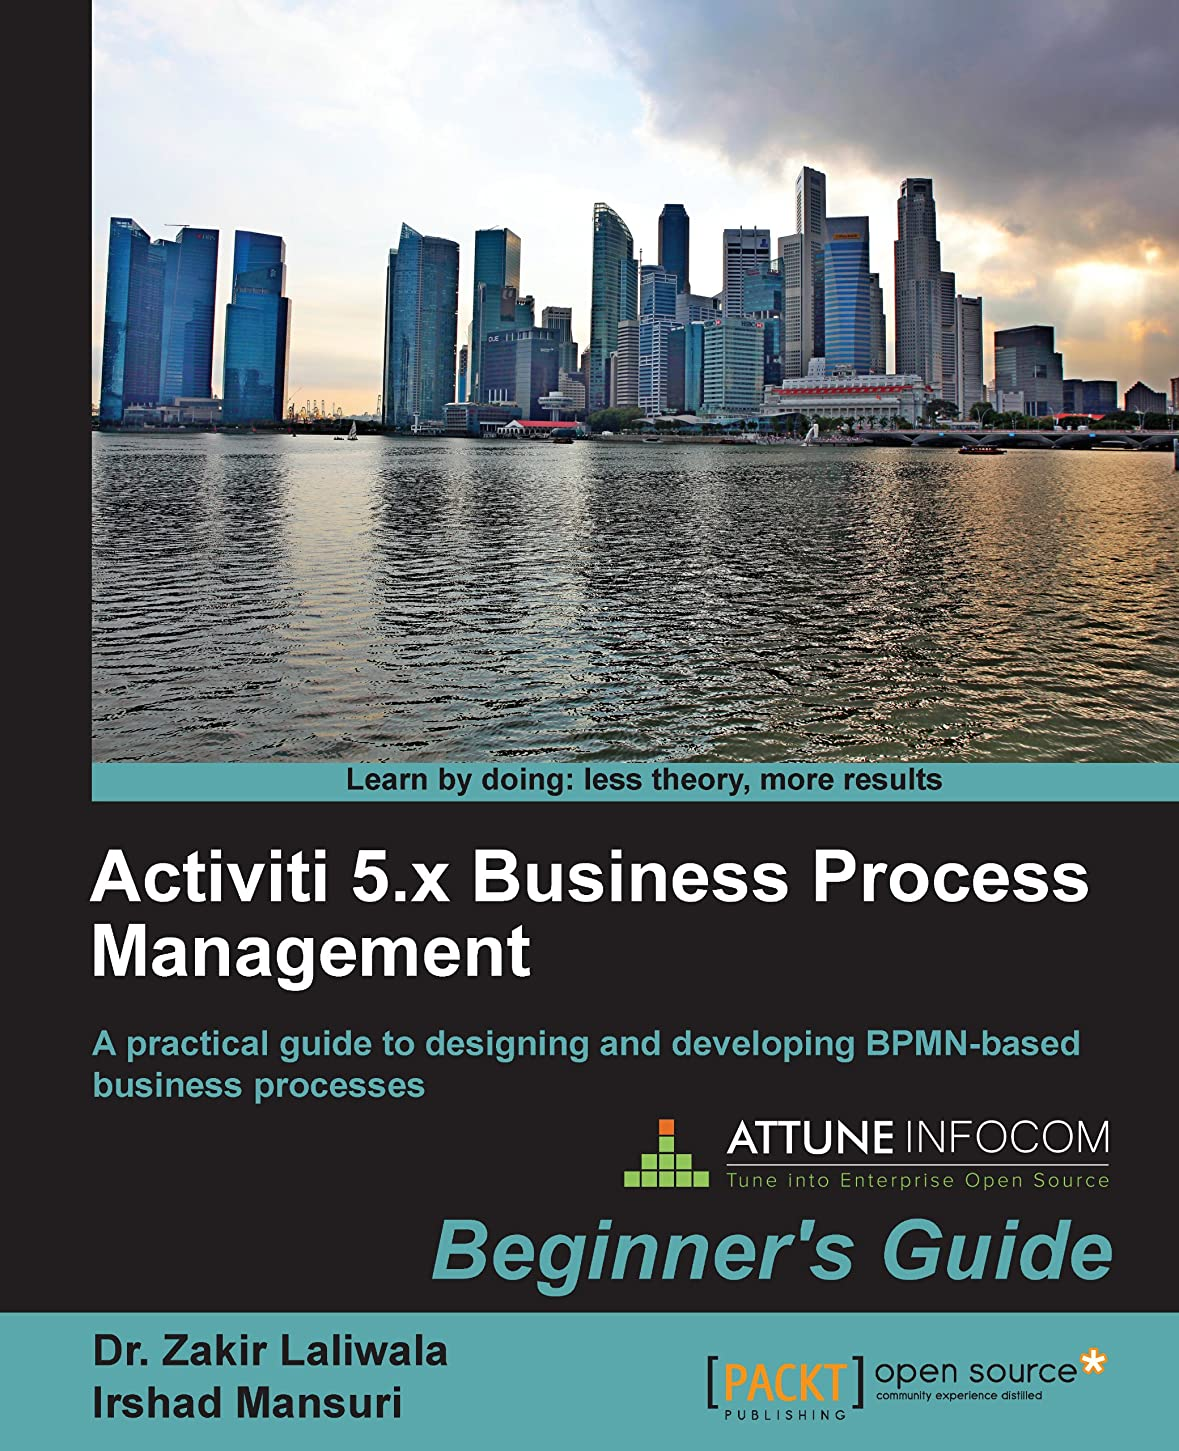 好む利益天窓Activiti 5.x Business Process Management Beginner's Guide (English Edition)